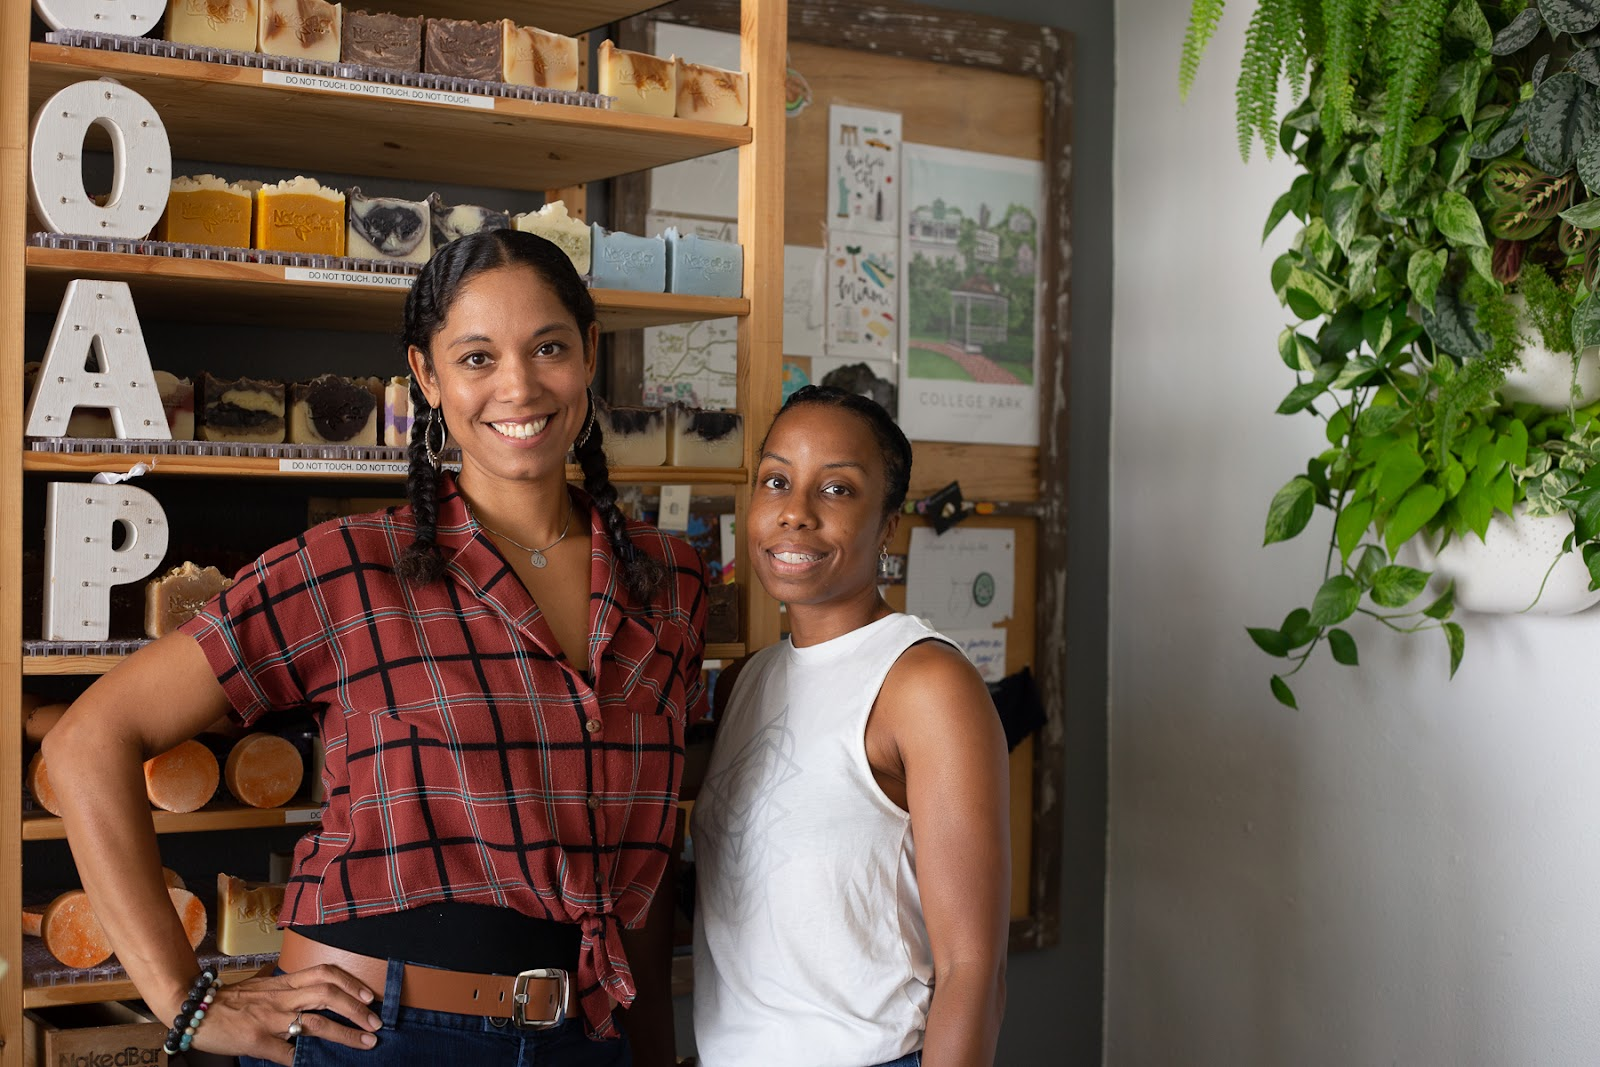 Natasha Byrd-Gaylon and Jennifer Peets, owners of Naked Bar Soap Co.